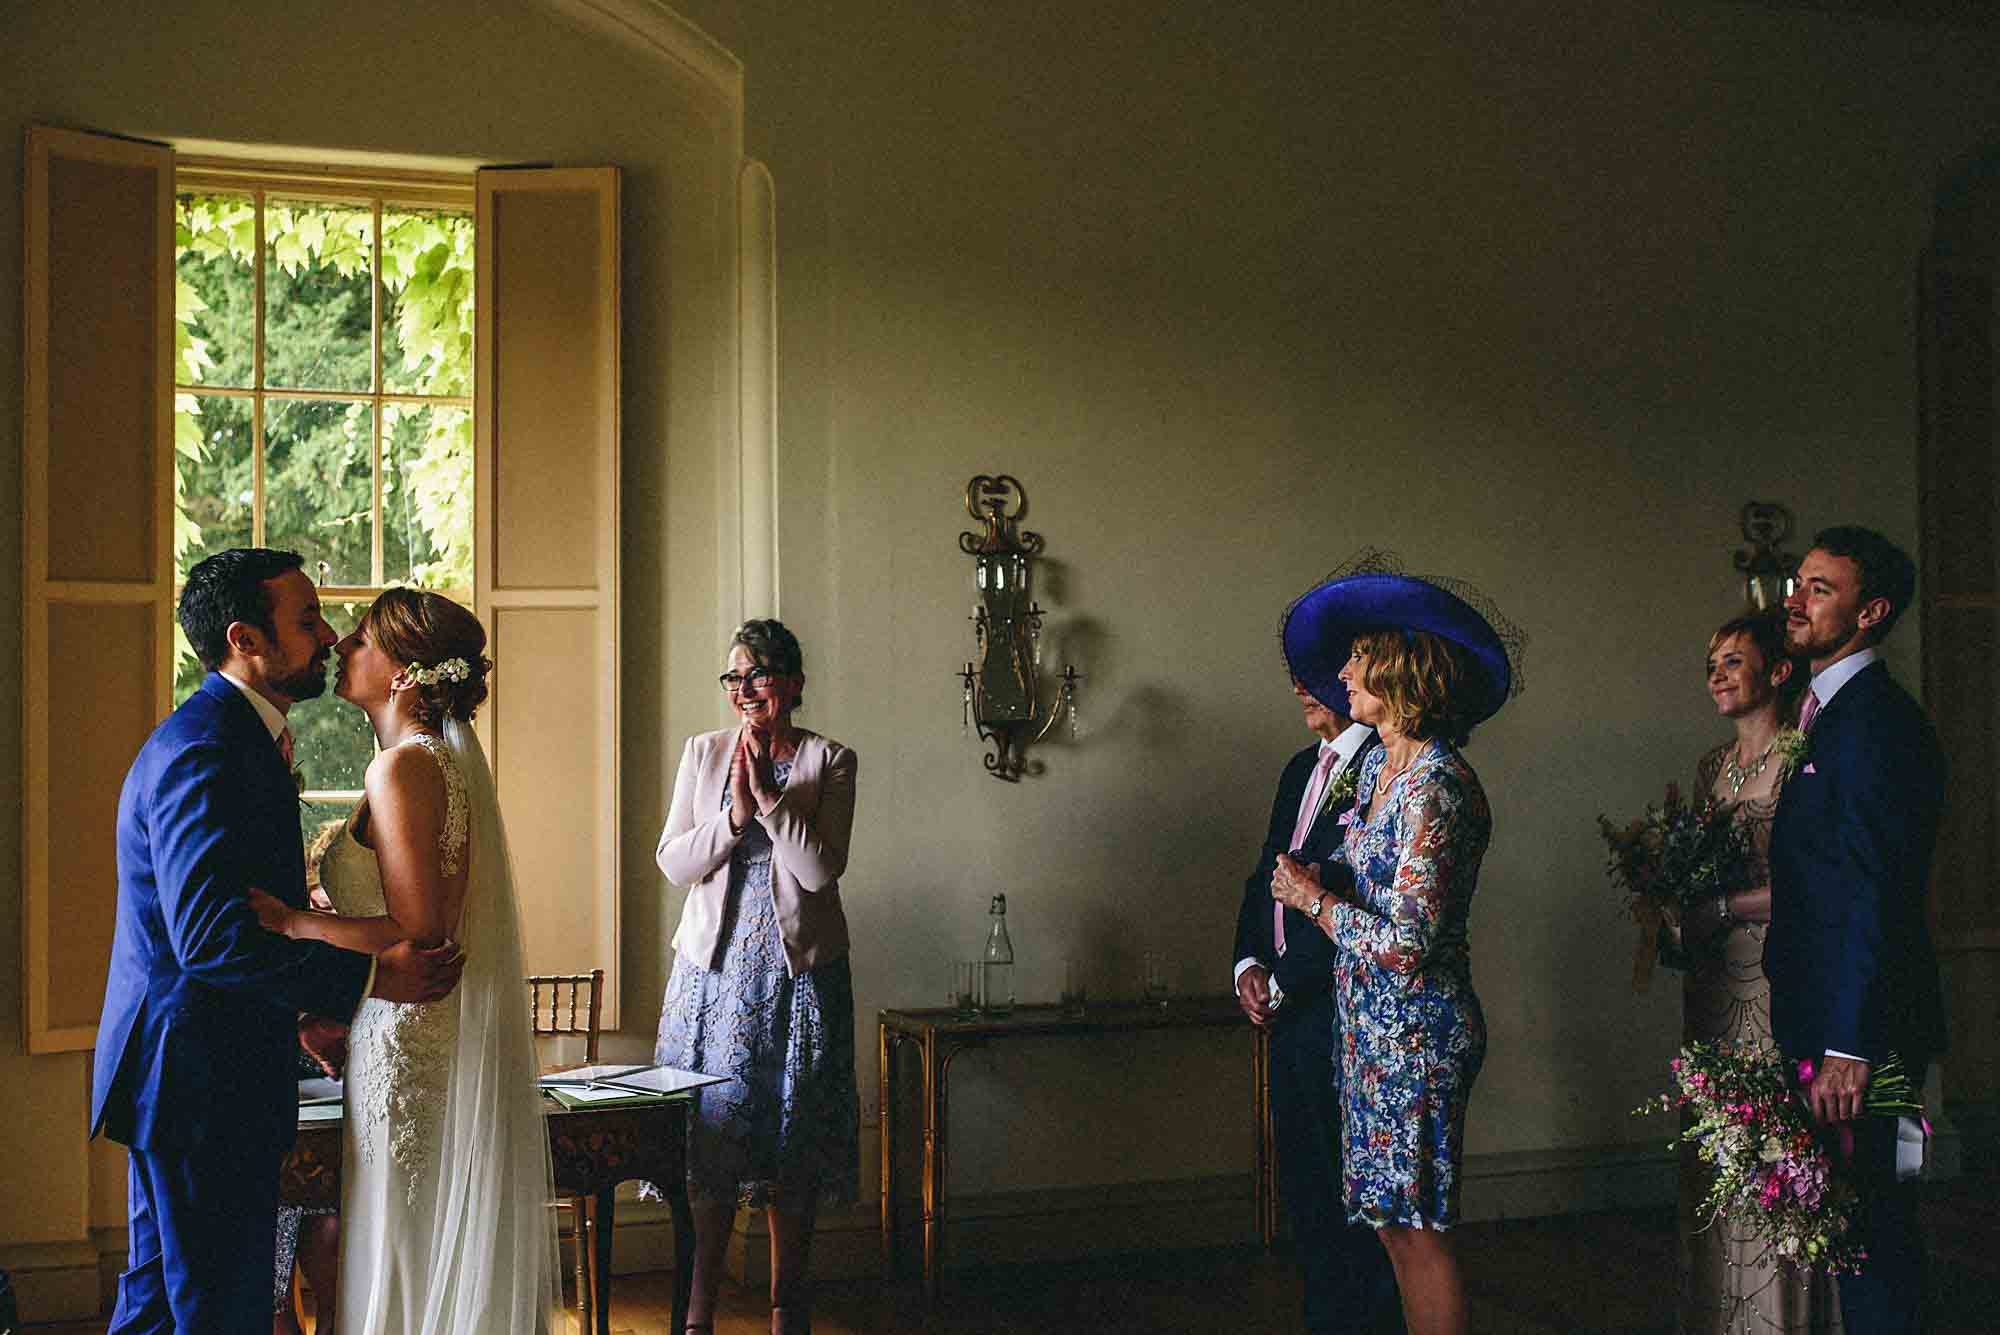 Narborough Hall Gardens wedding photography 29 Completed